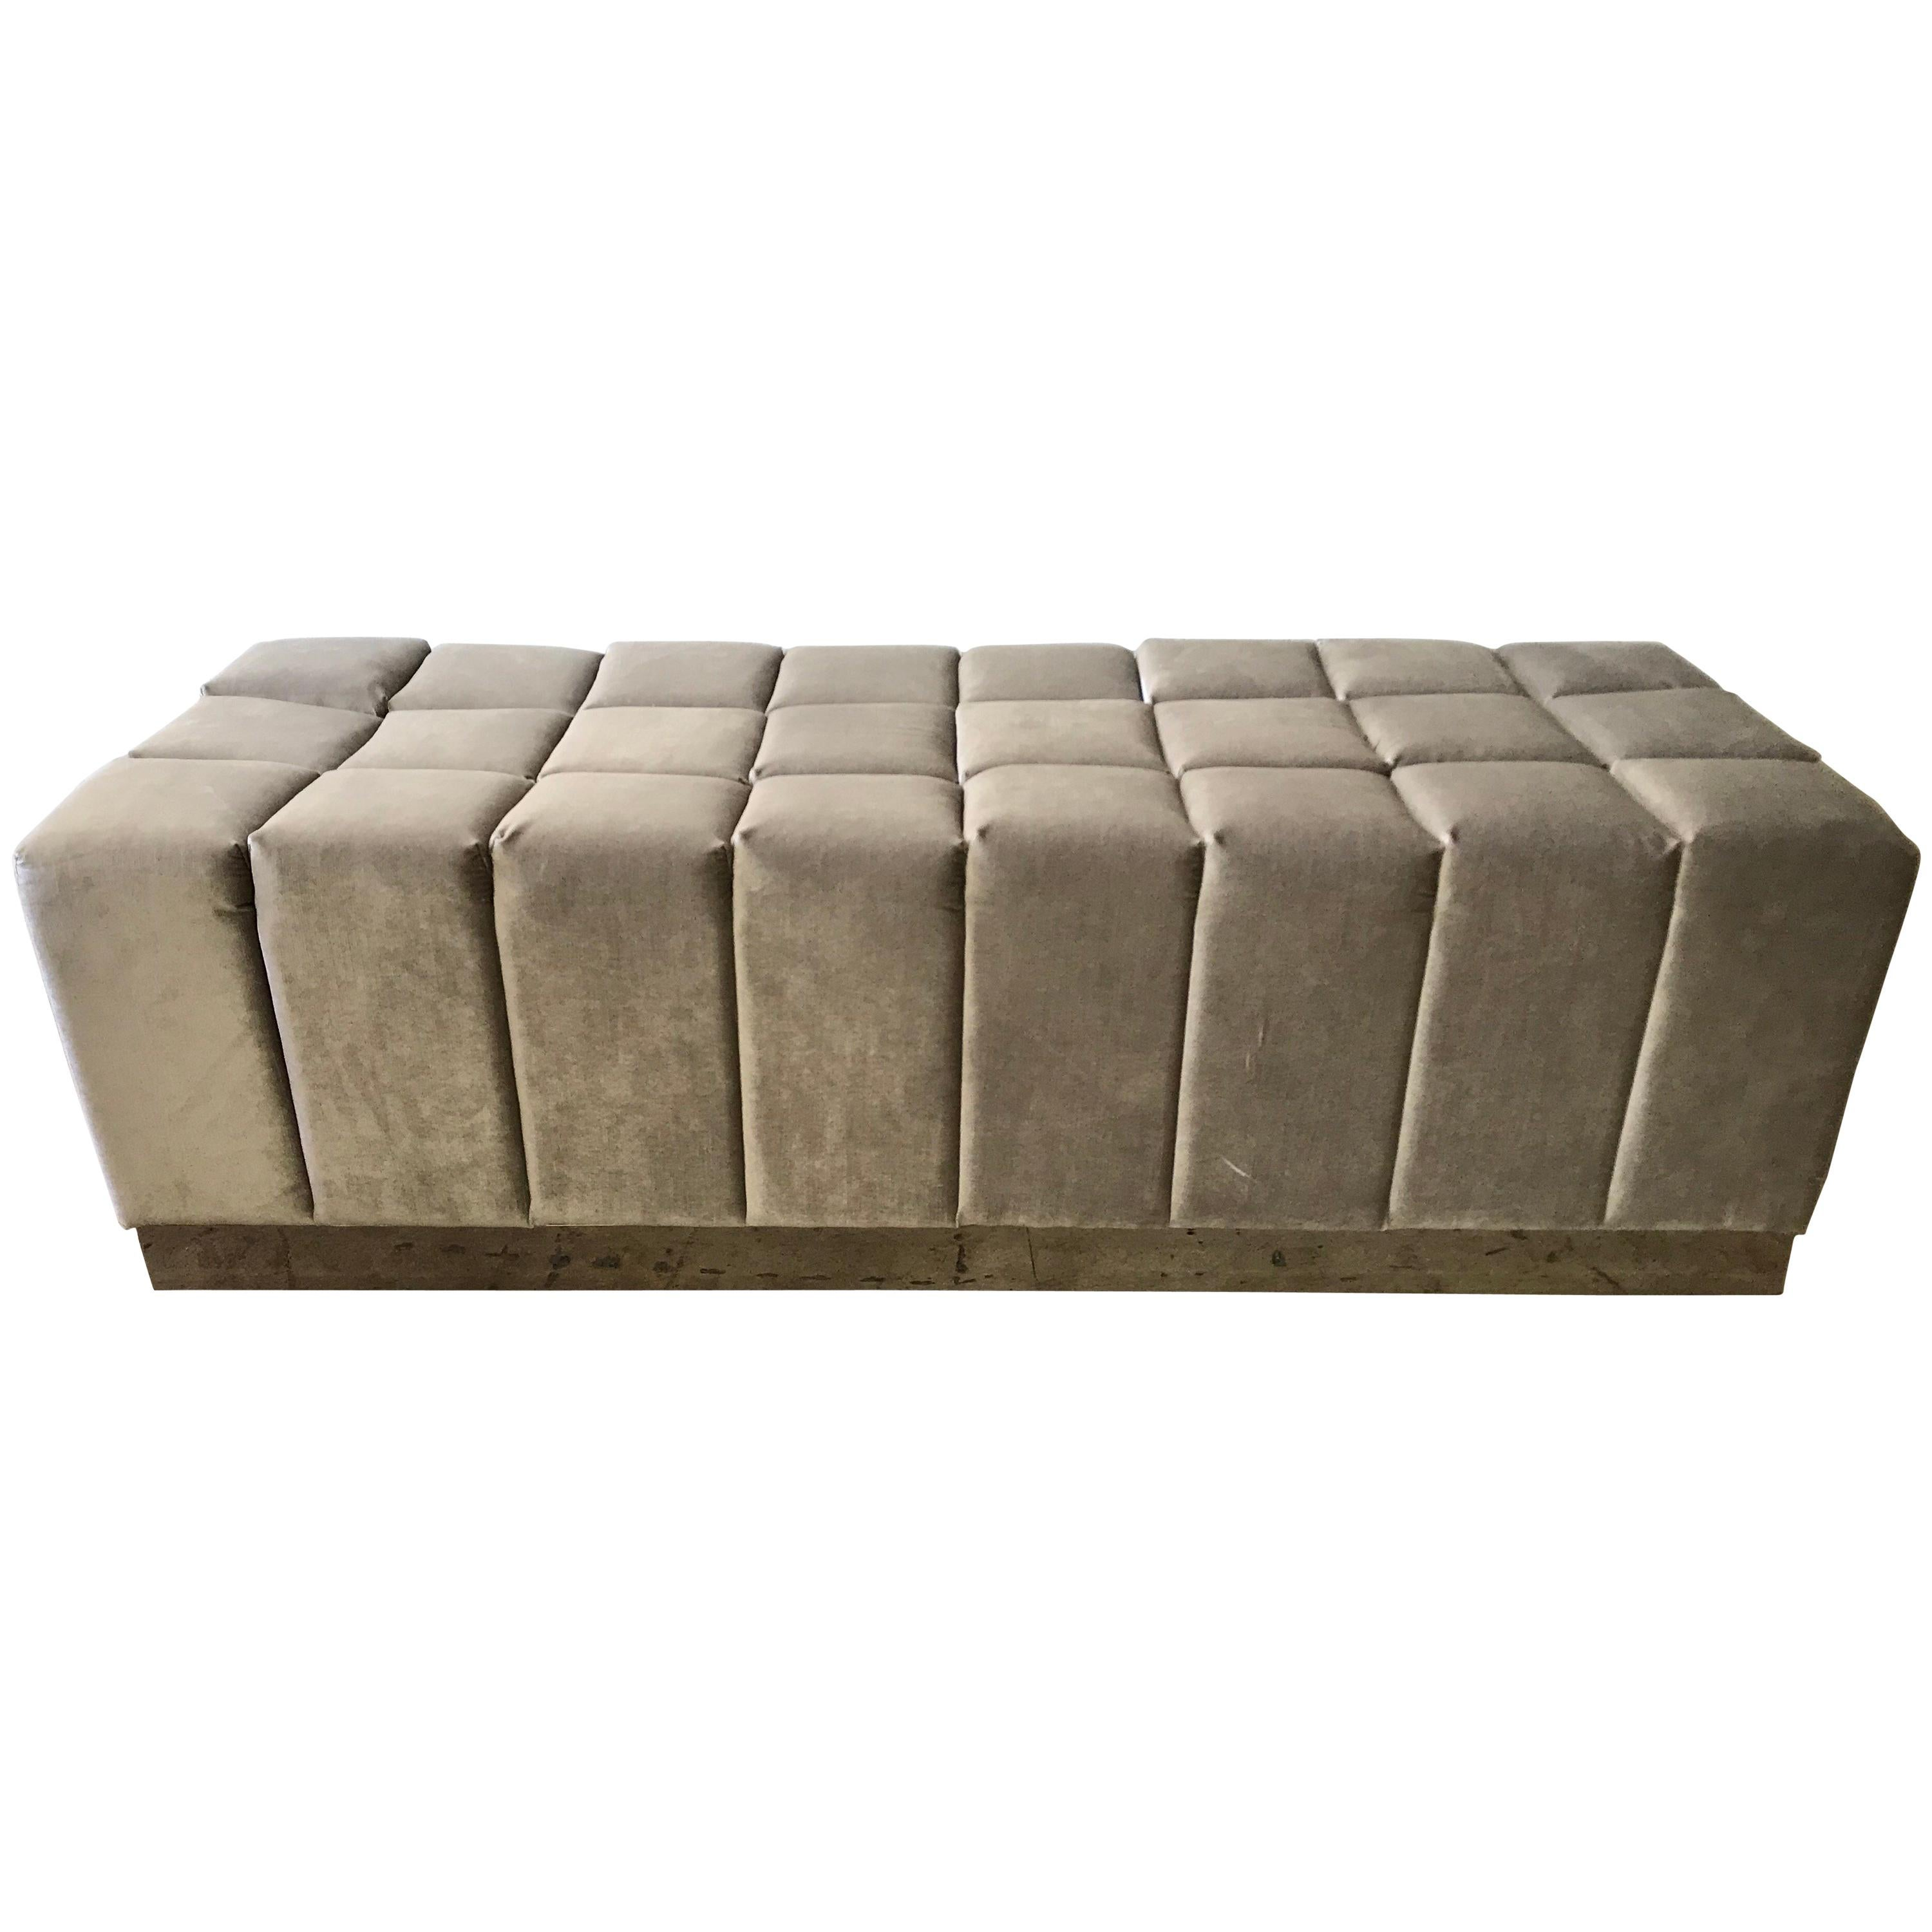 Harvey Probber Style Biscuit Tufted Grey Velvet and Steel Bench or Ottoman